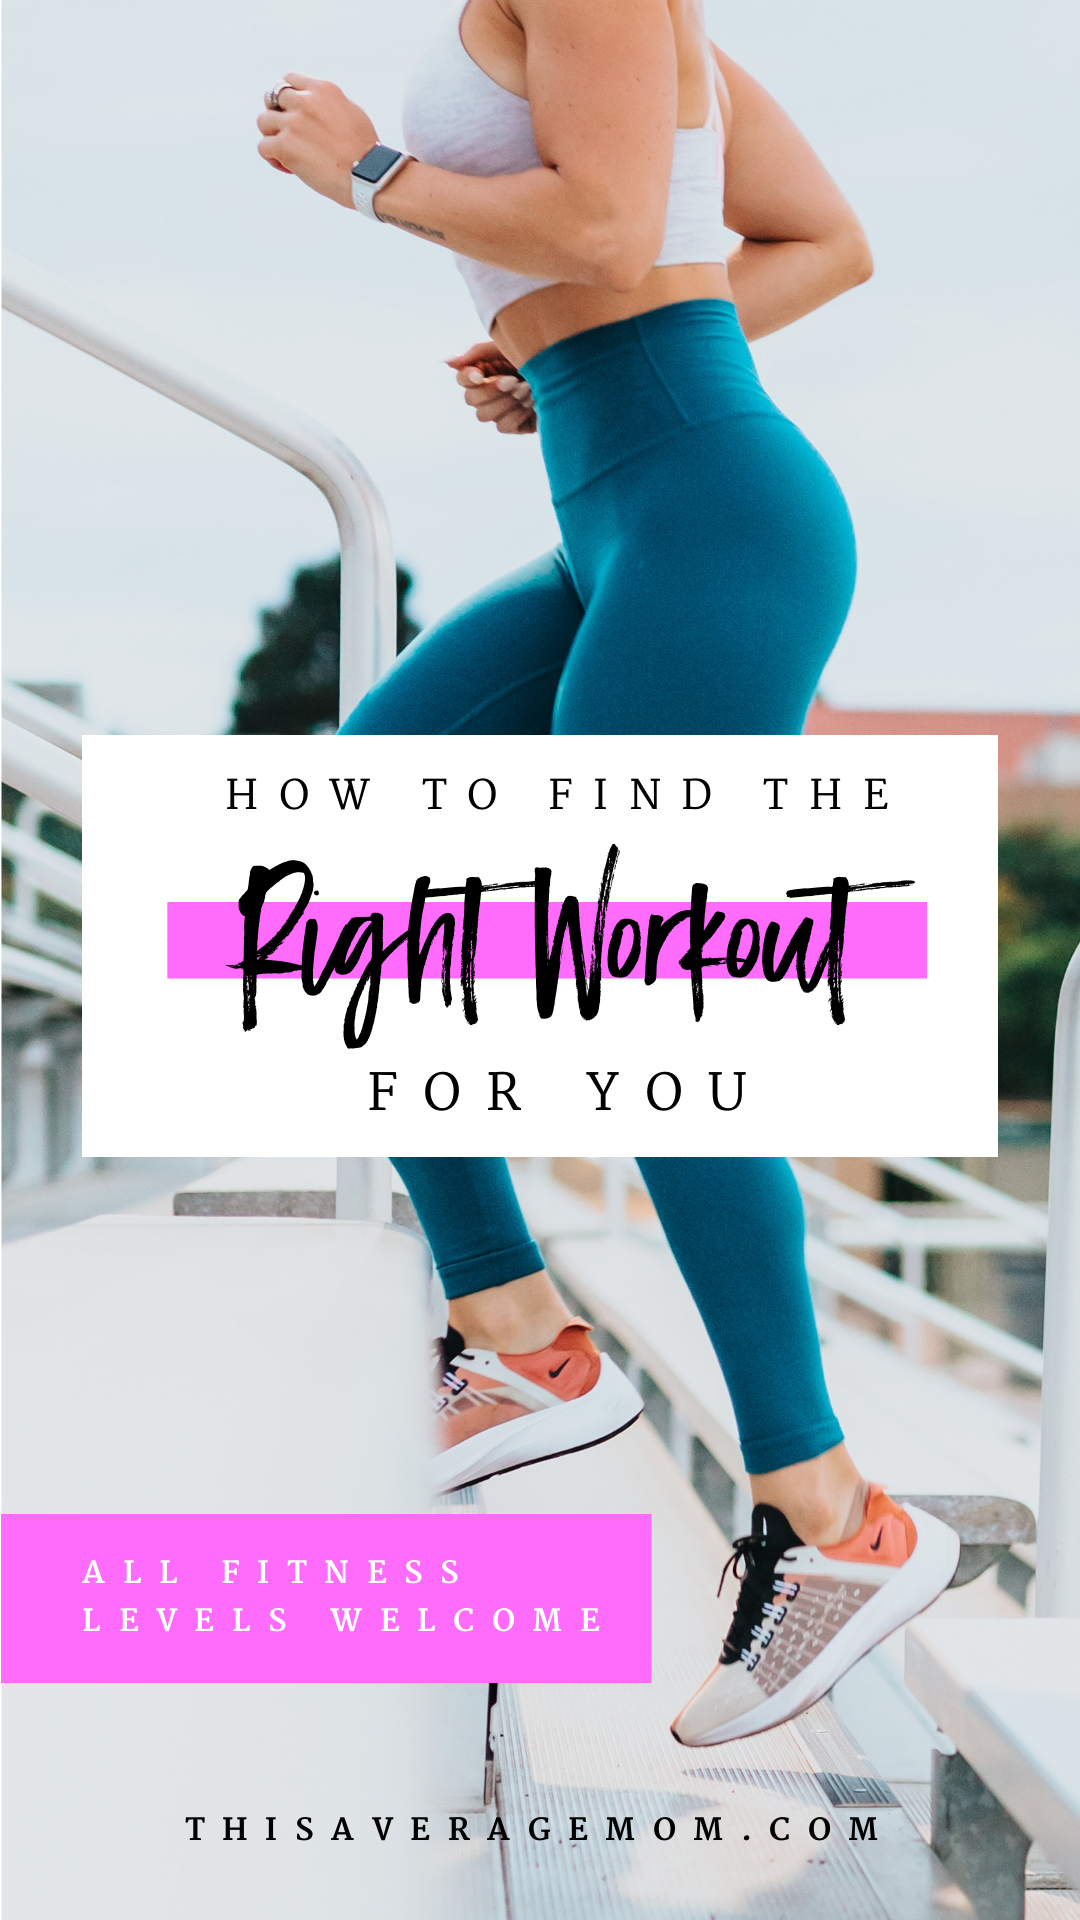 There are so many ways to exercise. Have you ever wondered what is the best workout for you? Here's what to consider when you are trying to figure out the right fitness routine.